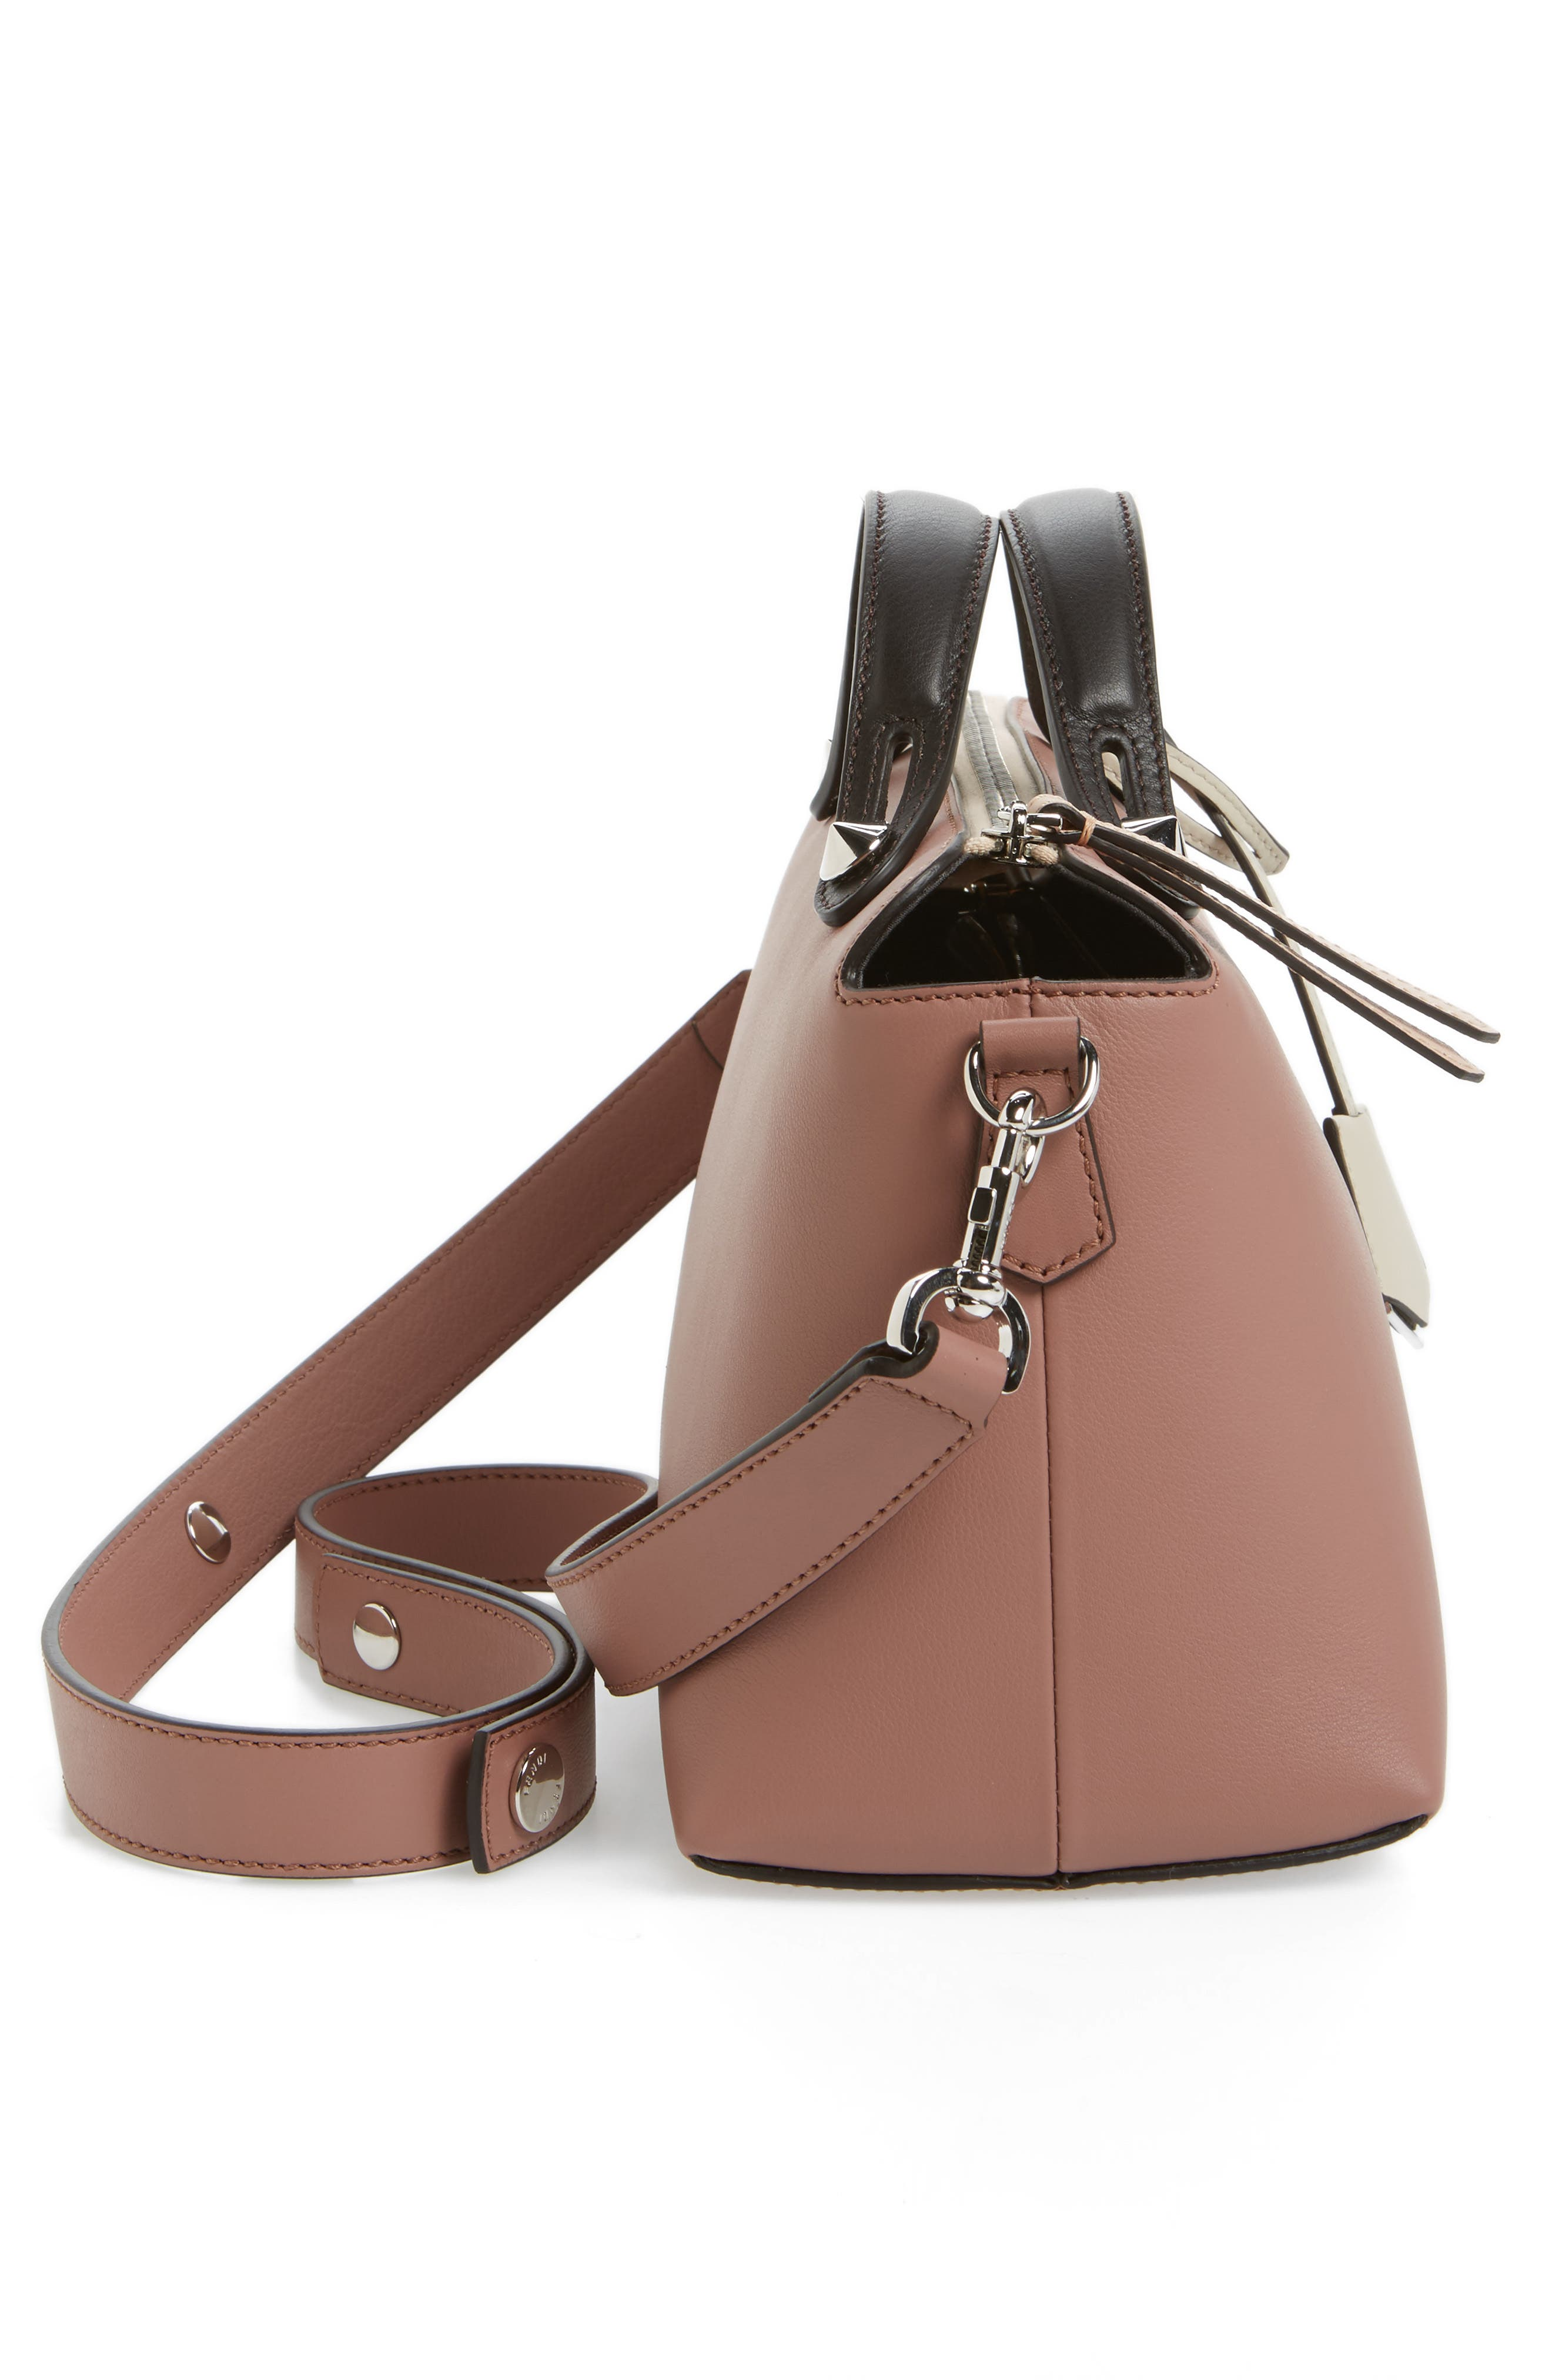 'Medium By the Way' Colorblock Leather Shoulder Bag,                             Alternate thumbnail 57, color,